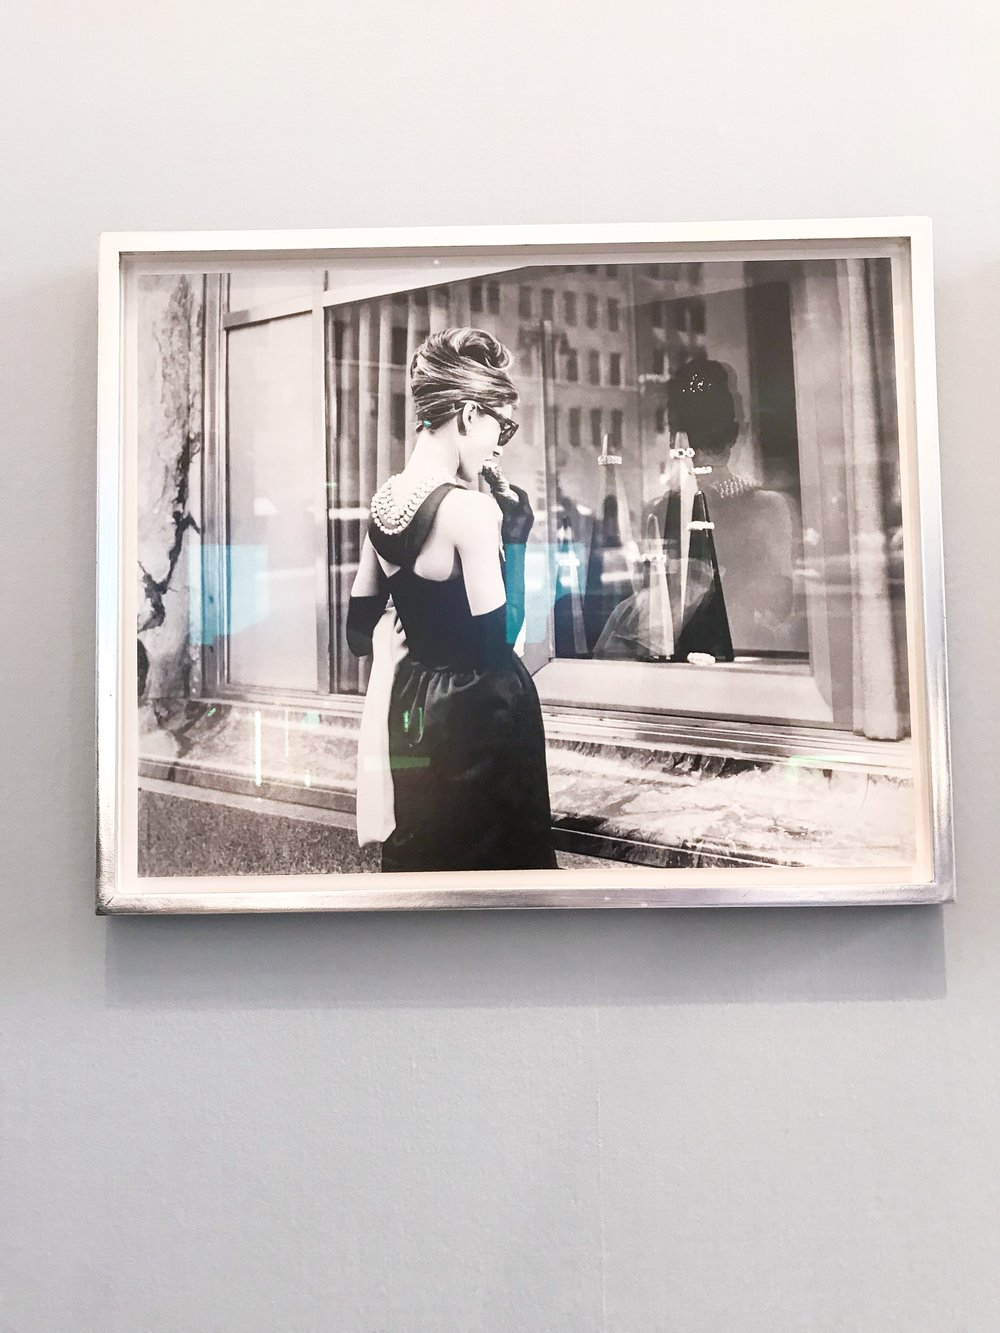 I love this framed photo from the opening scene of breakfast at tiffany's!